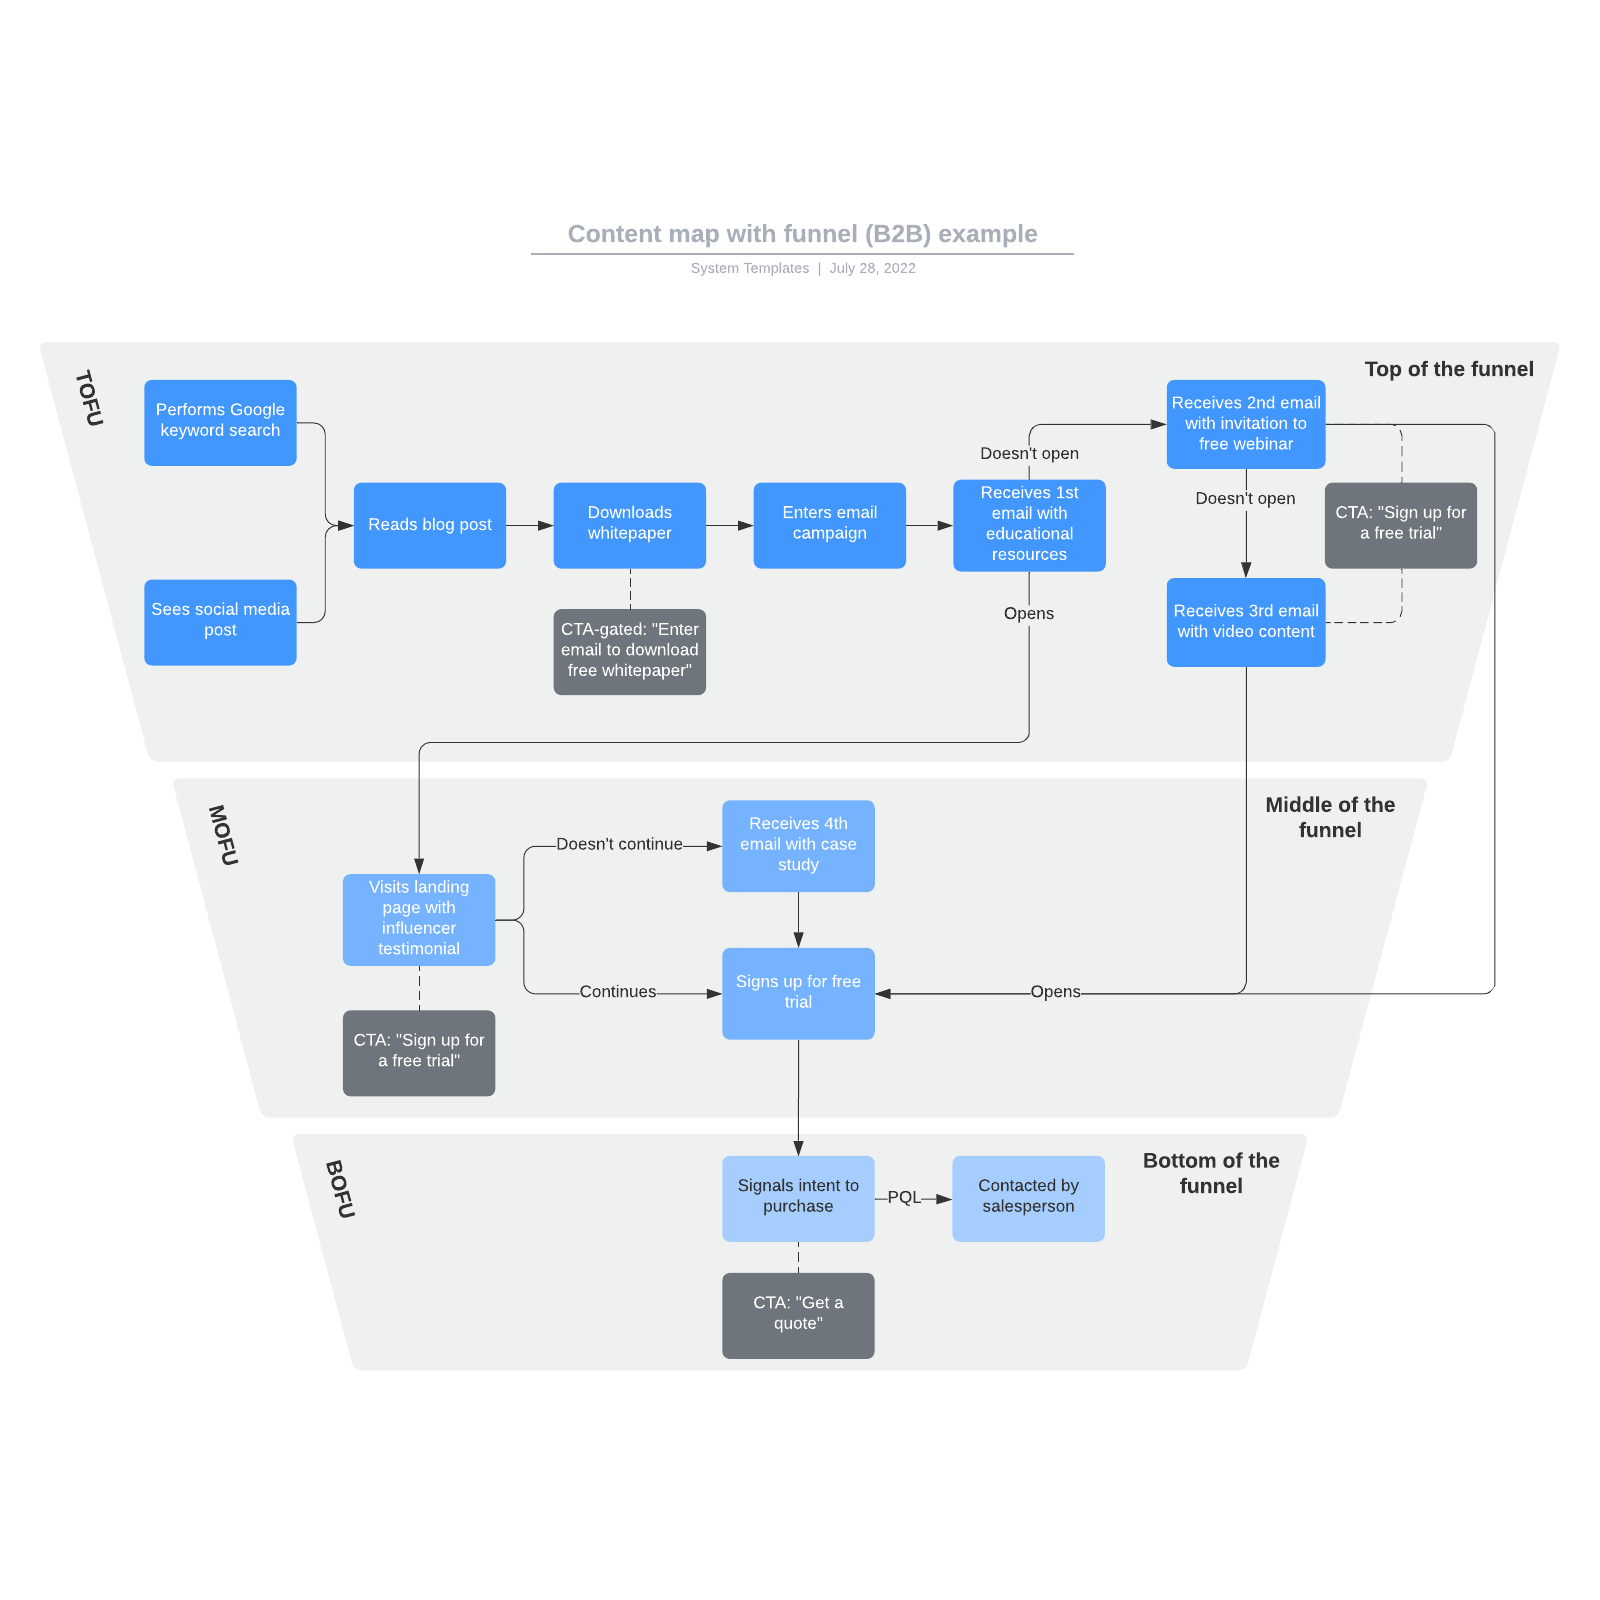 Content map with funnel (B2B) example